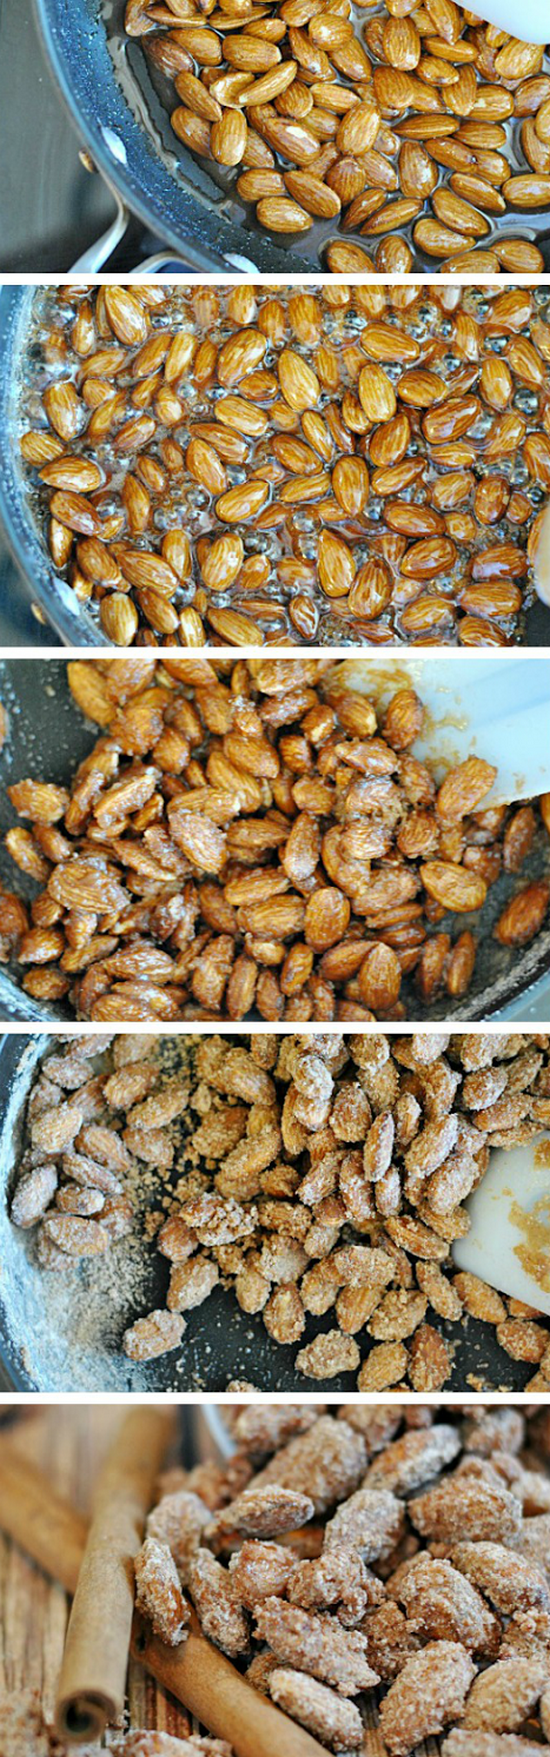 Cinnamon Sugared Almonds. So easy and so delicious. You're going to love this recipe!